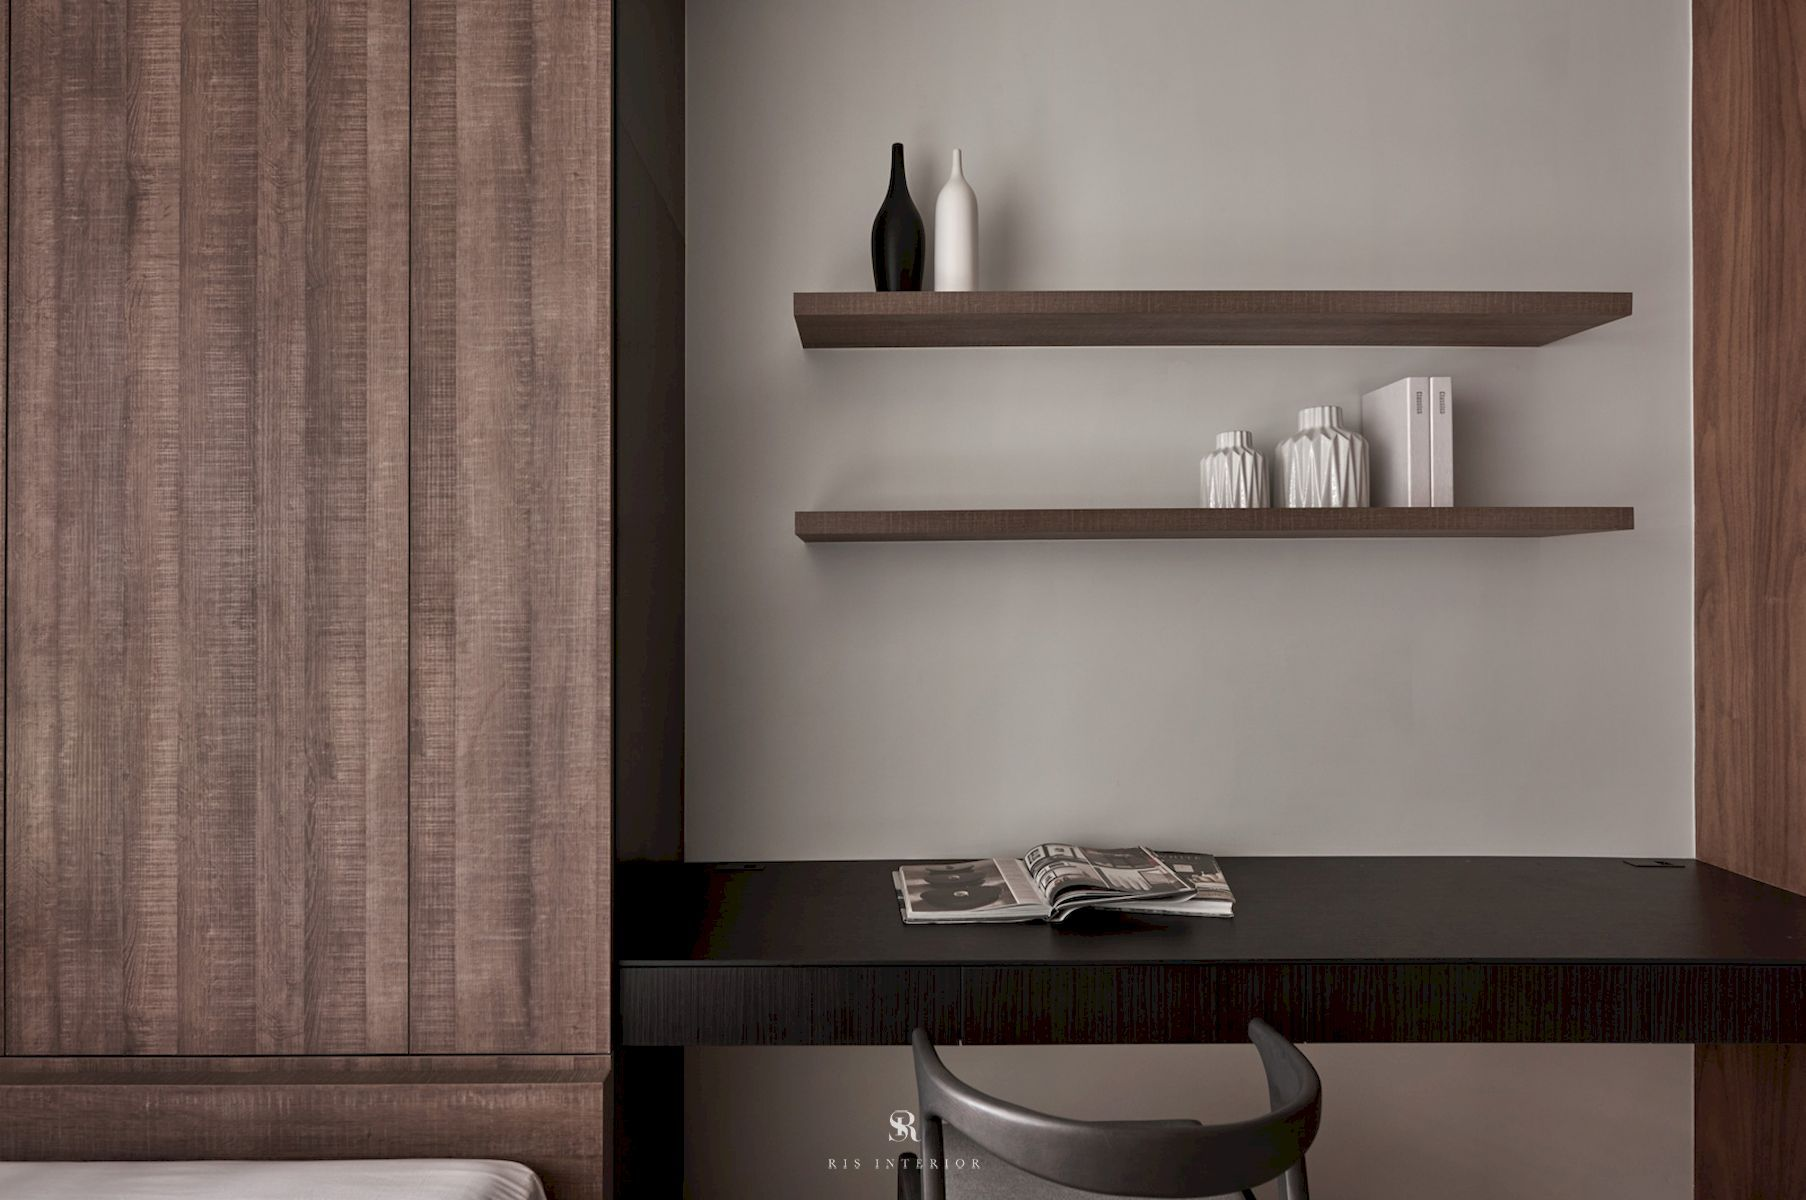 Nook, Reading Room, Home Library, Home Office Ideas And Inspiration Styles:  Asian